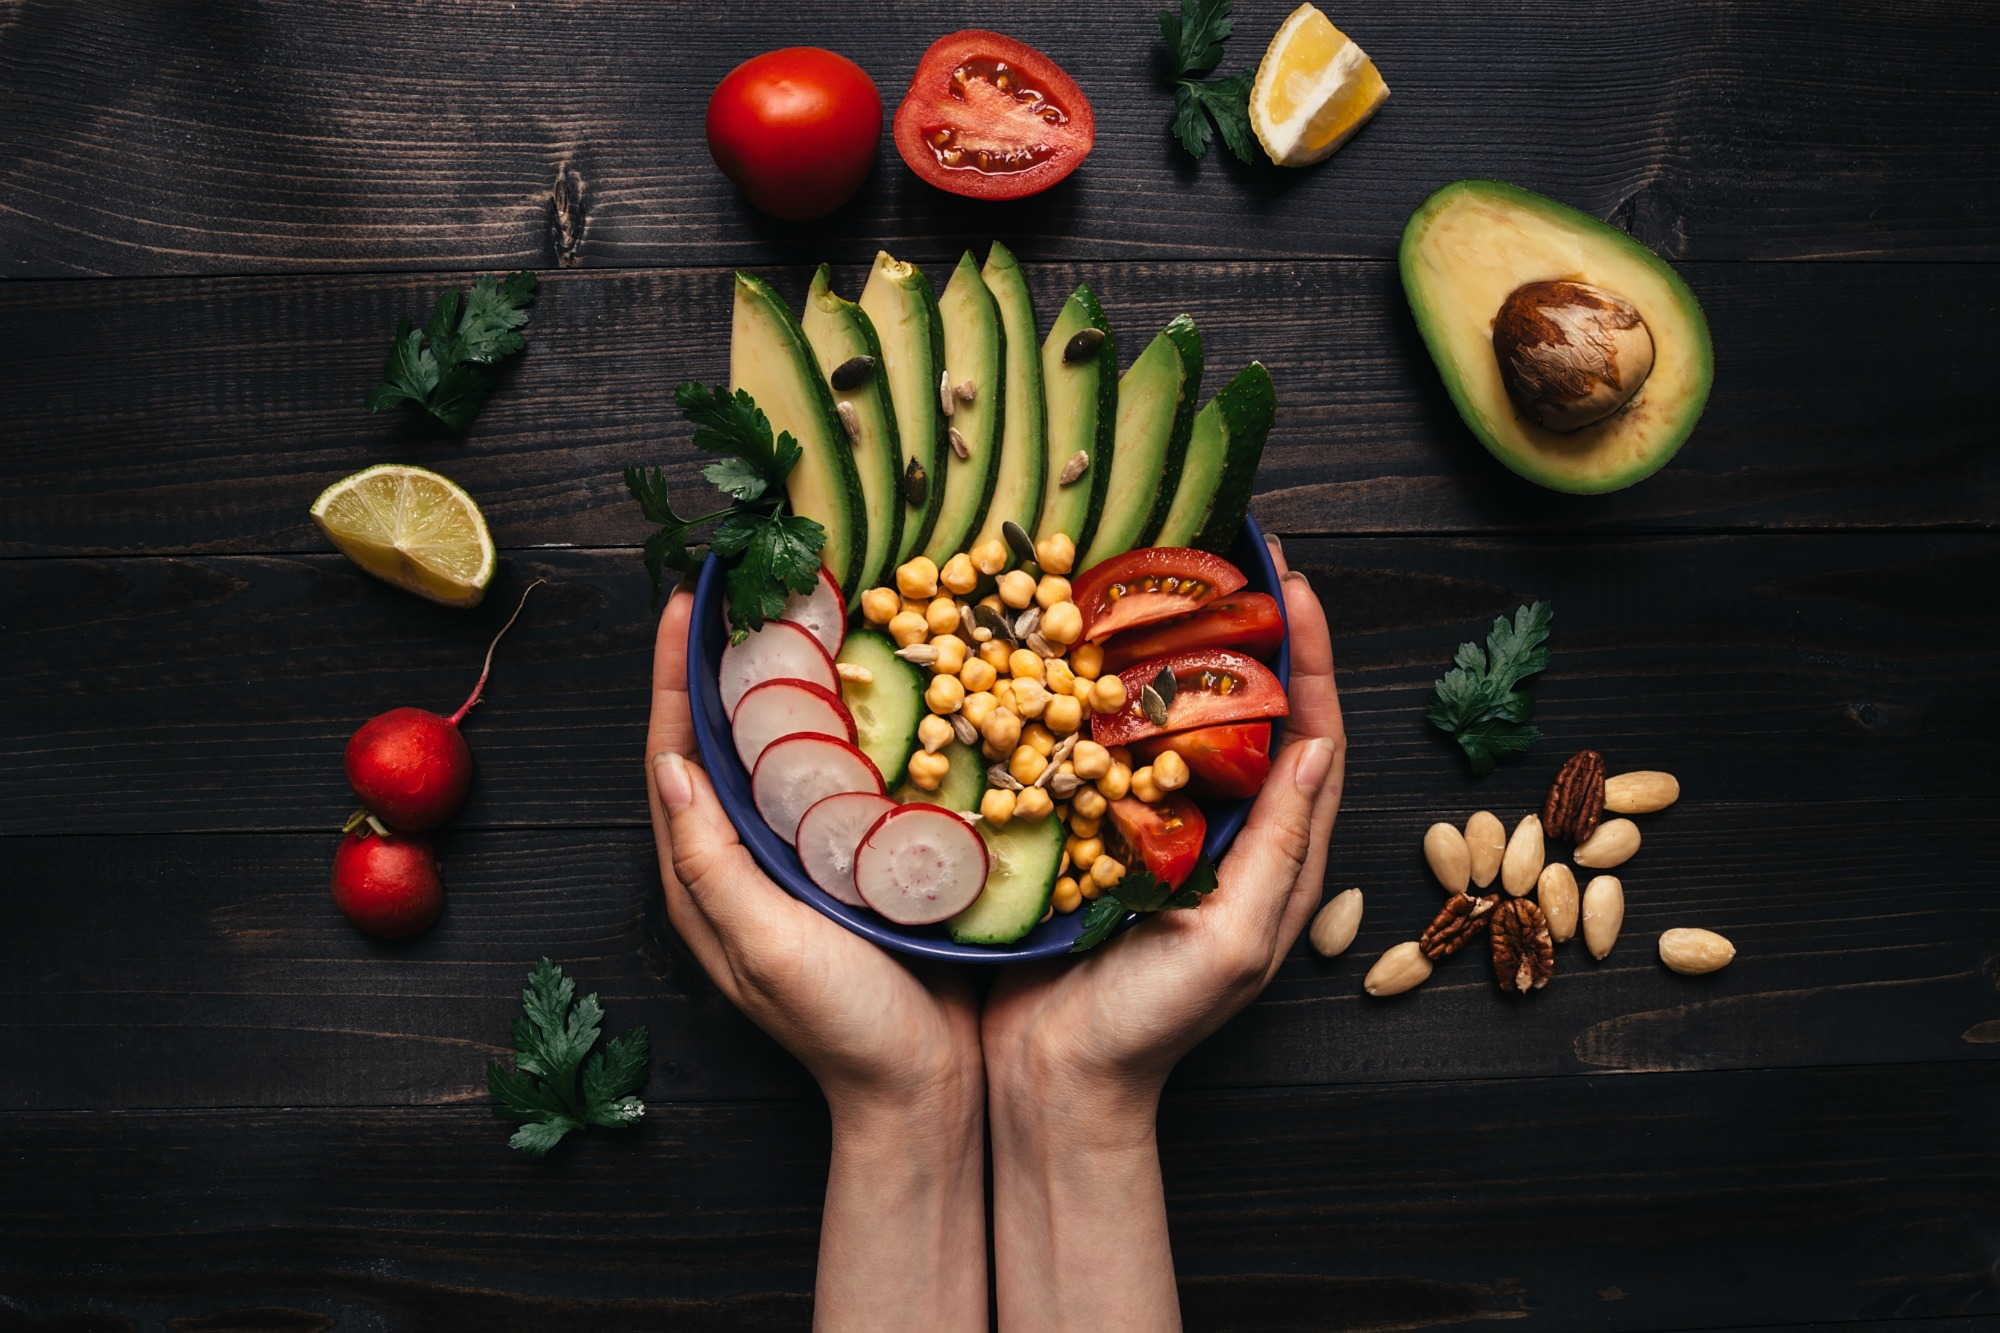 hands holding healthy food - resized.jpg